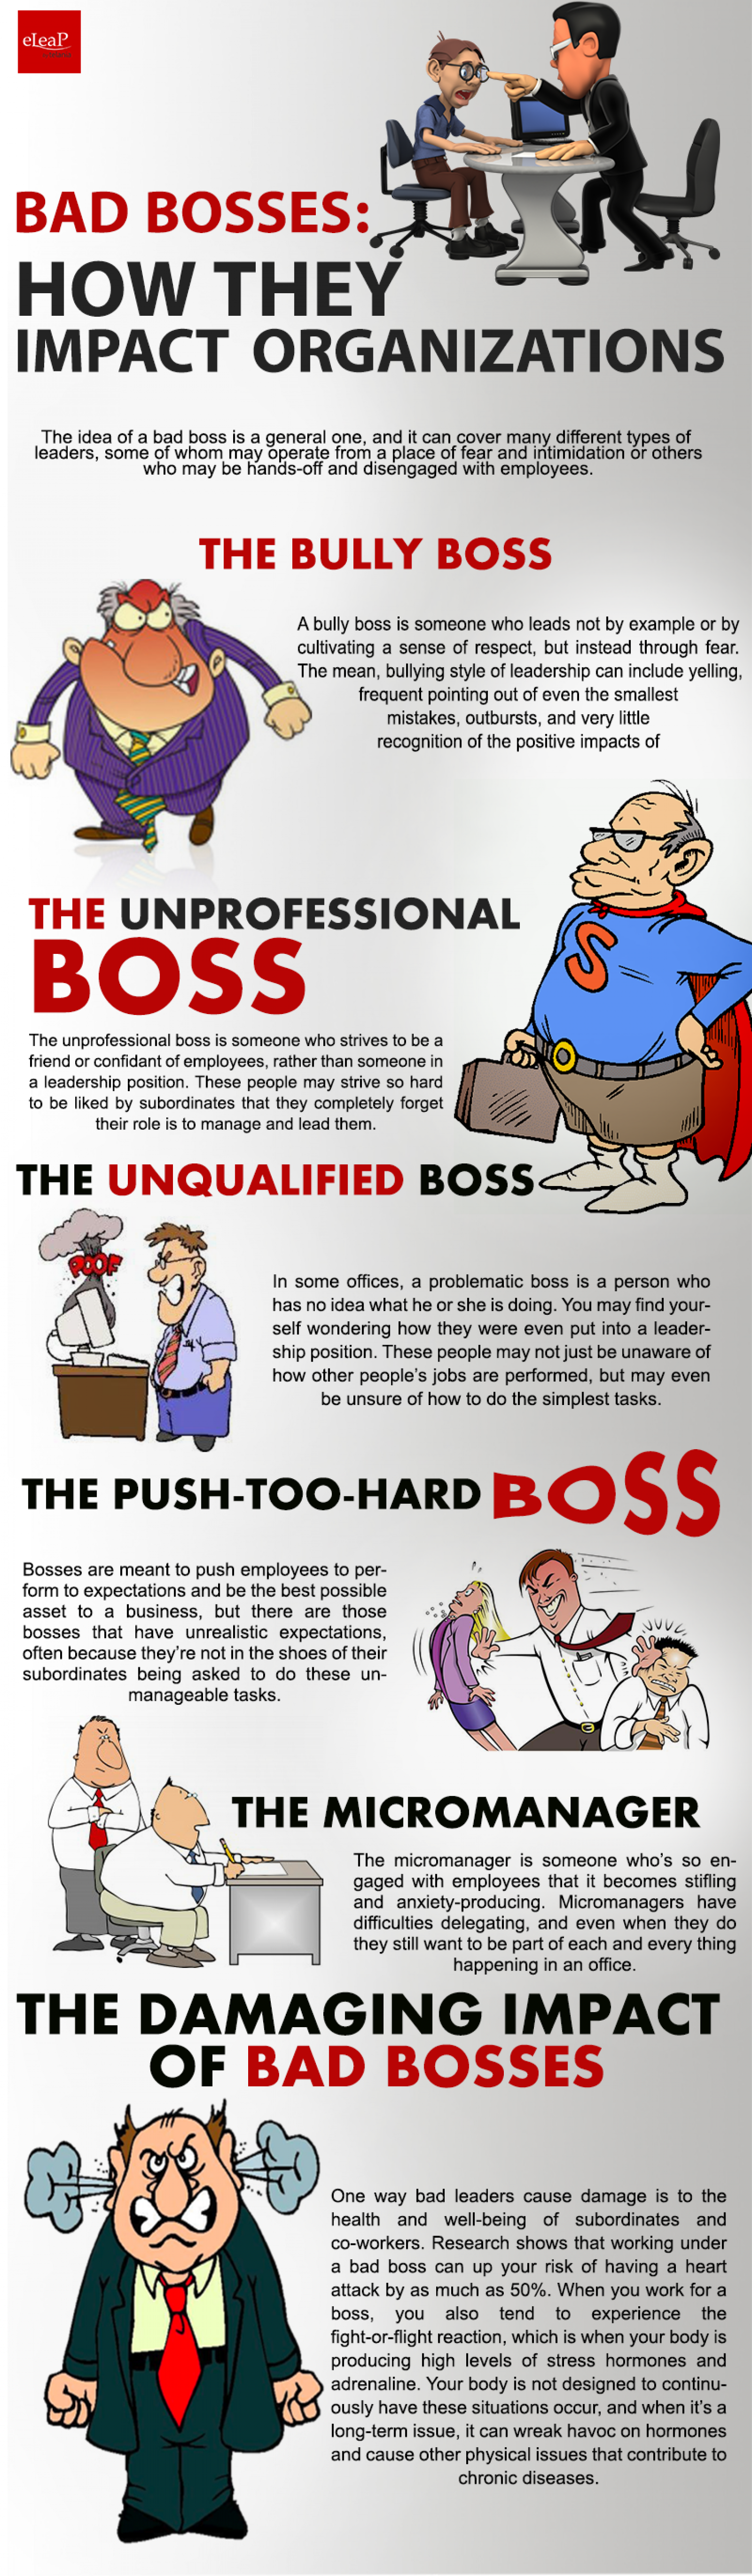 bad bosses how they impact organizations ly bad bosses how they impact organizations infographic